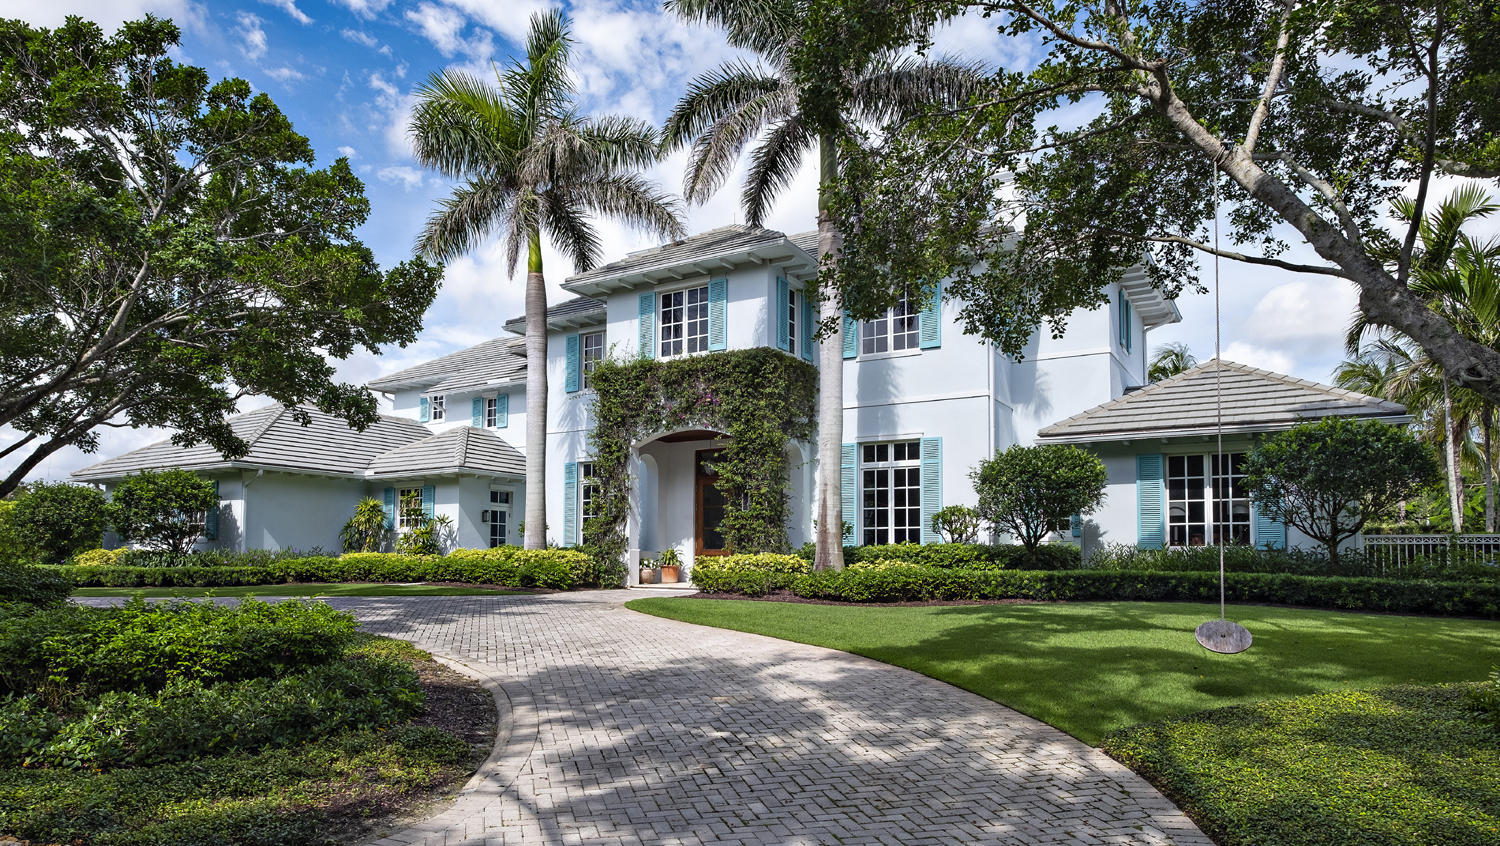 New Home for sale at 12175 Banyan Road in North Palm Beach